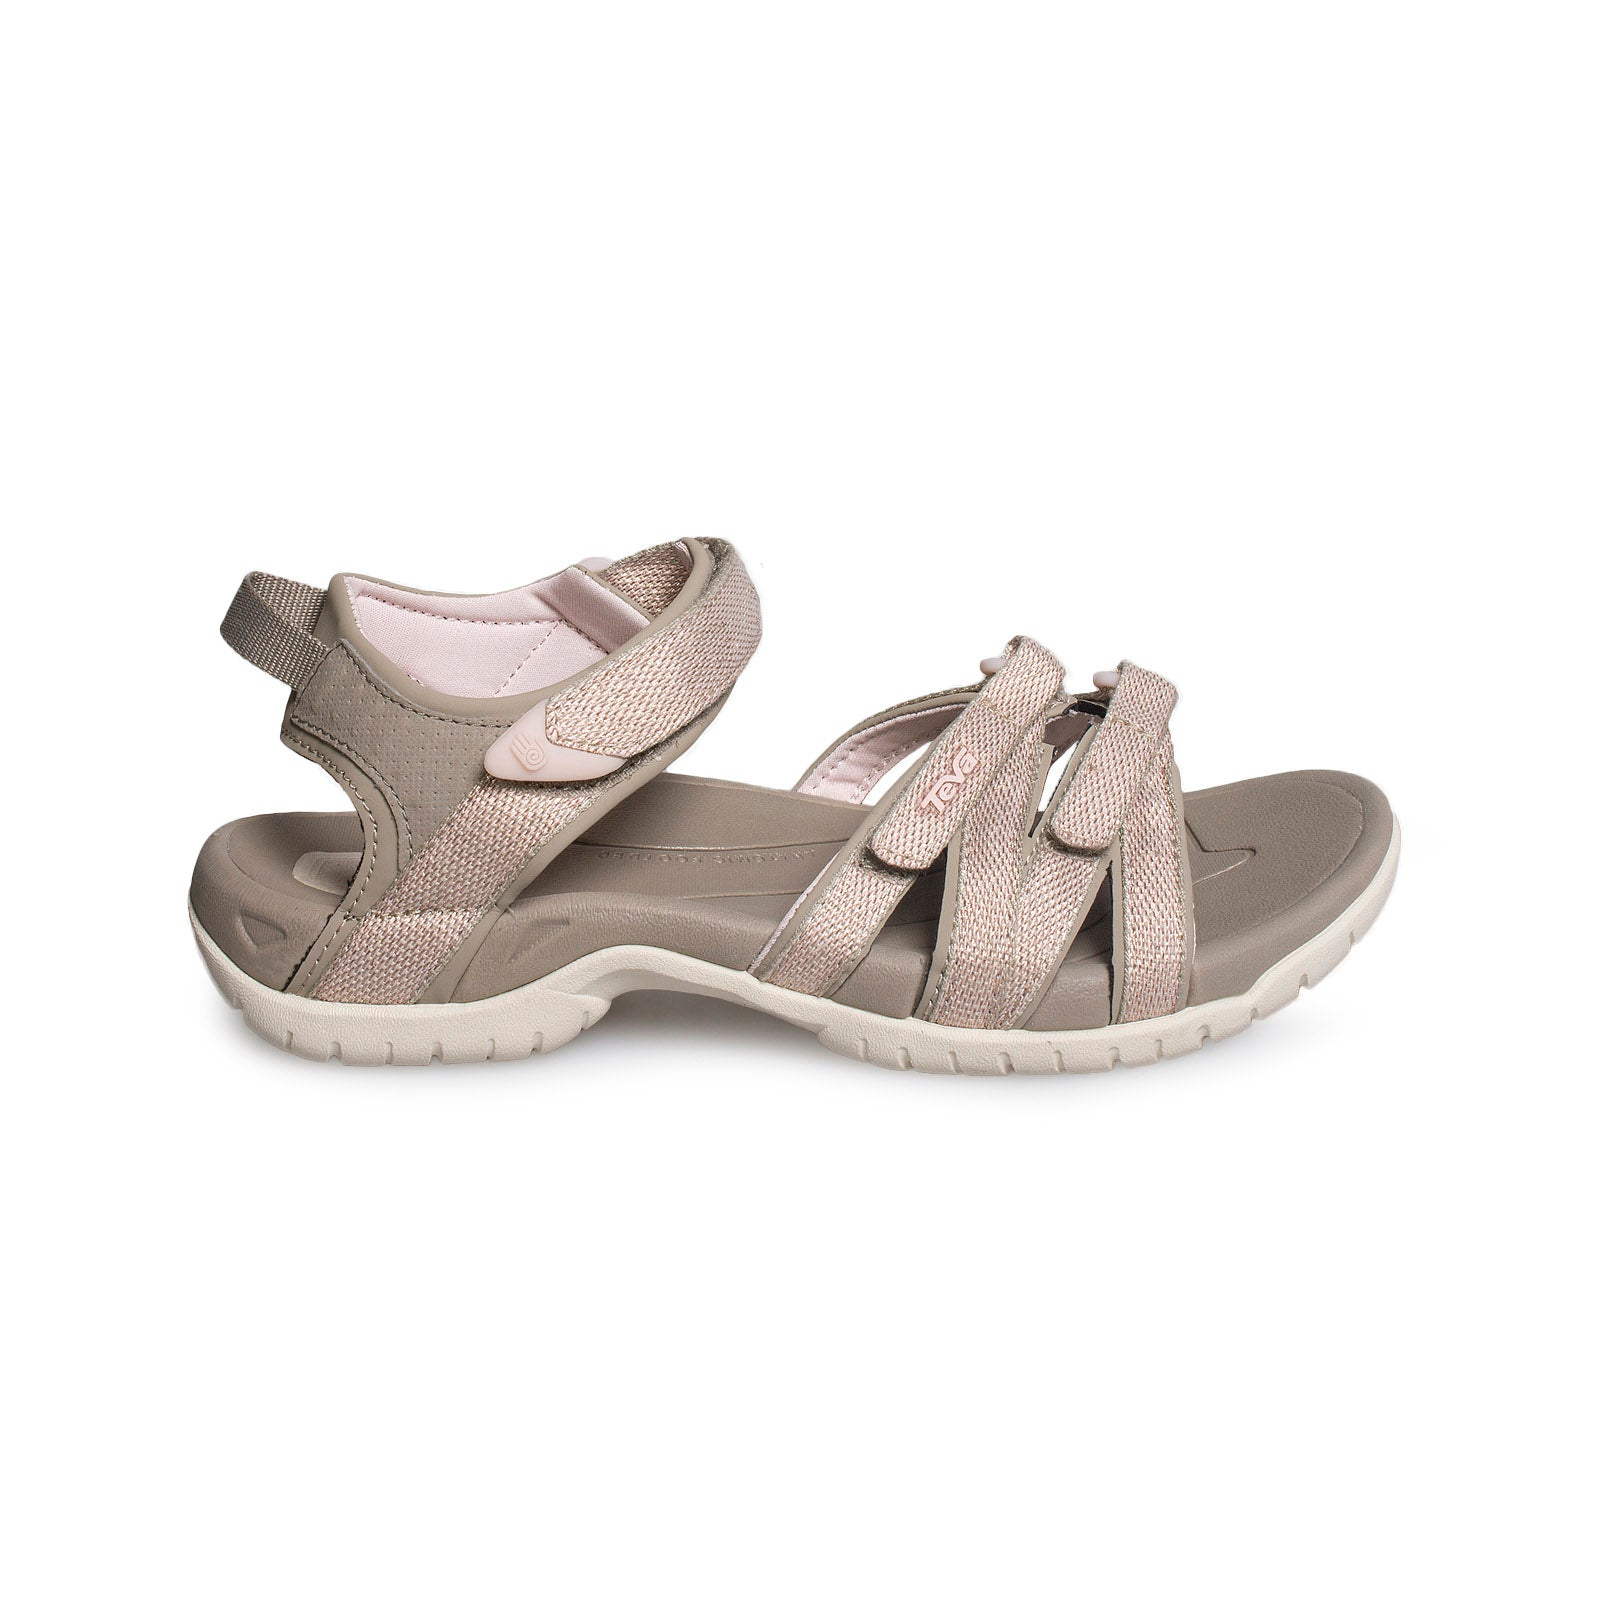 8a78e4c60641 Teva Tirra Zaca Rose Gold Sandals - Women s - MyCozyBoots